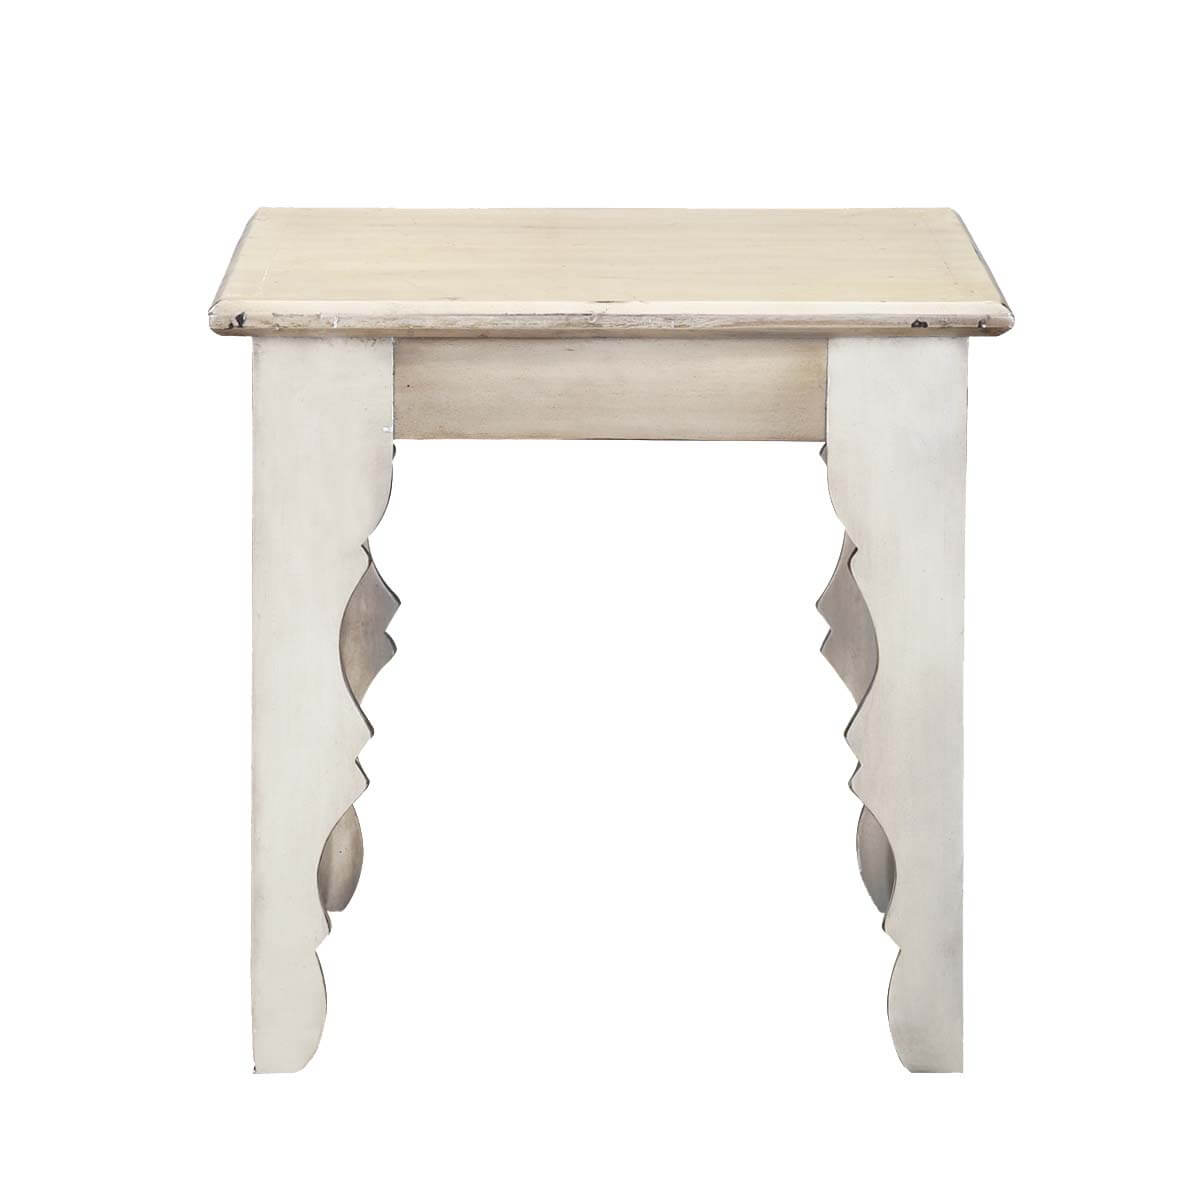 Winter White Rustic Mango Wood Square Accent End Table